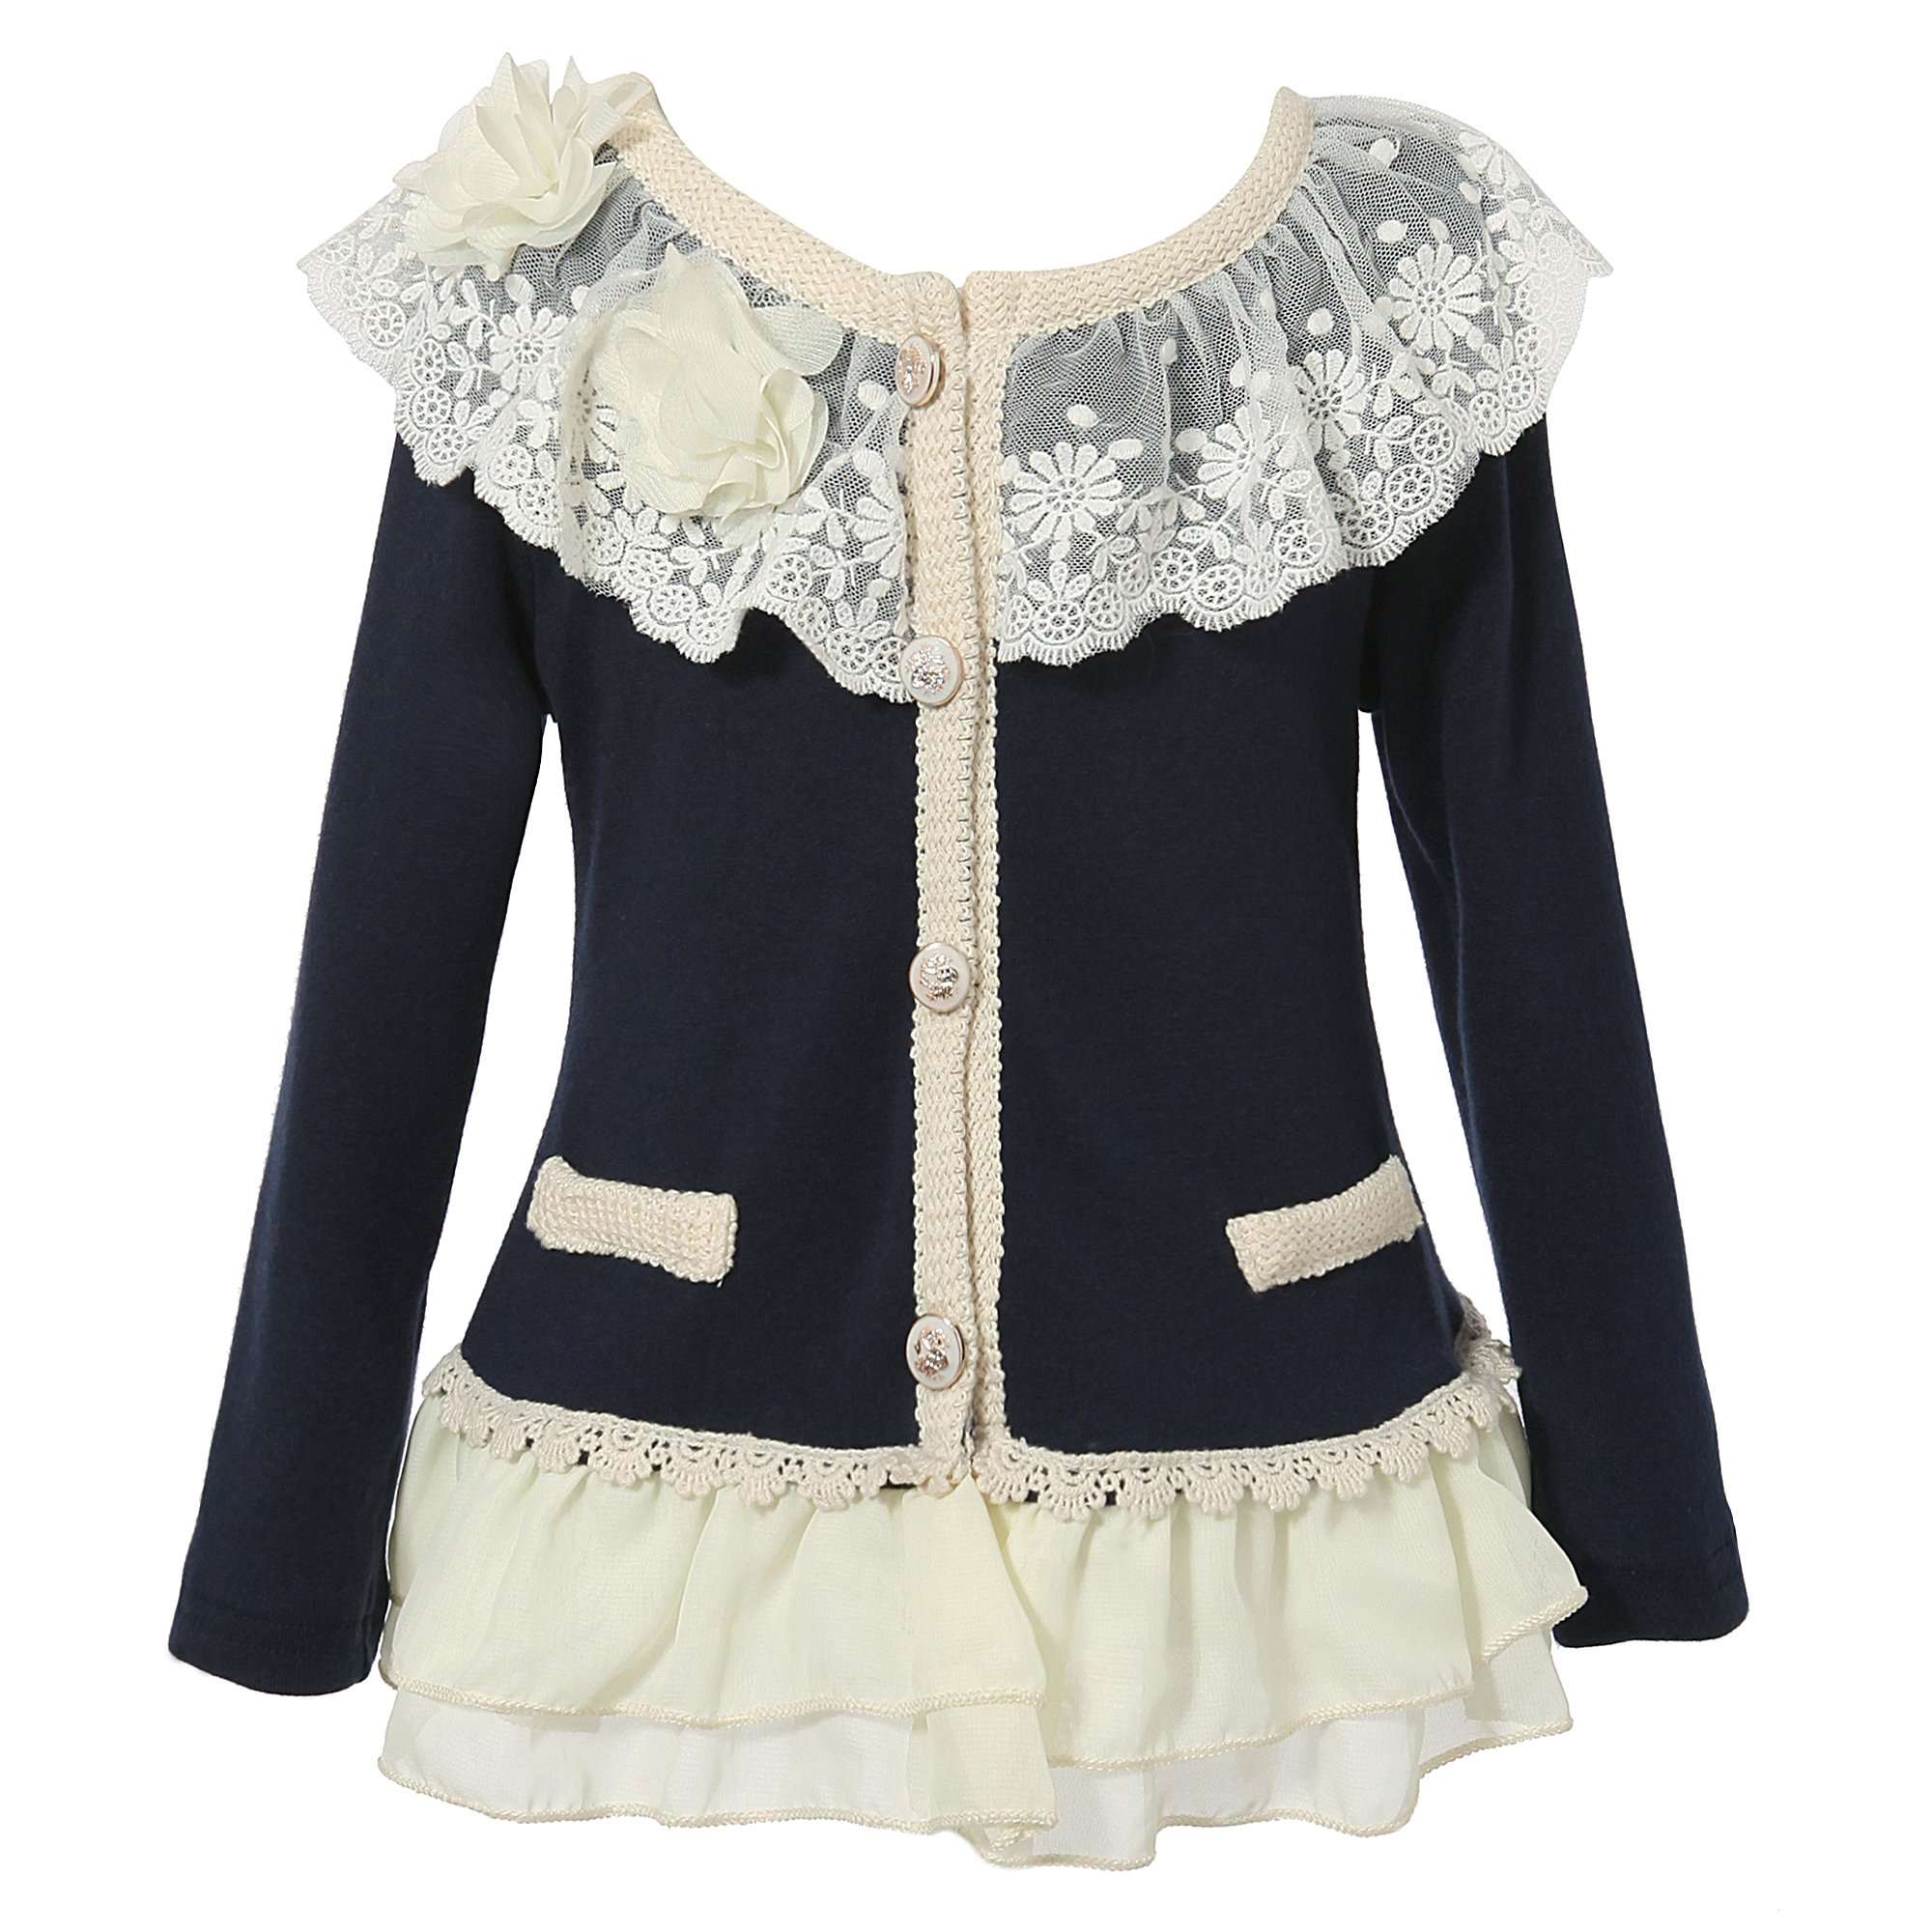 Richie House Girl's Cardigan with Layered Mesh Bottoms RH1432-A-02-5/6